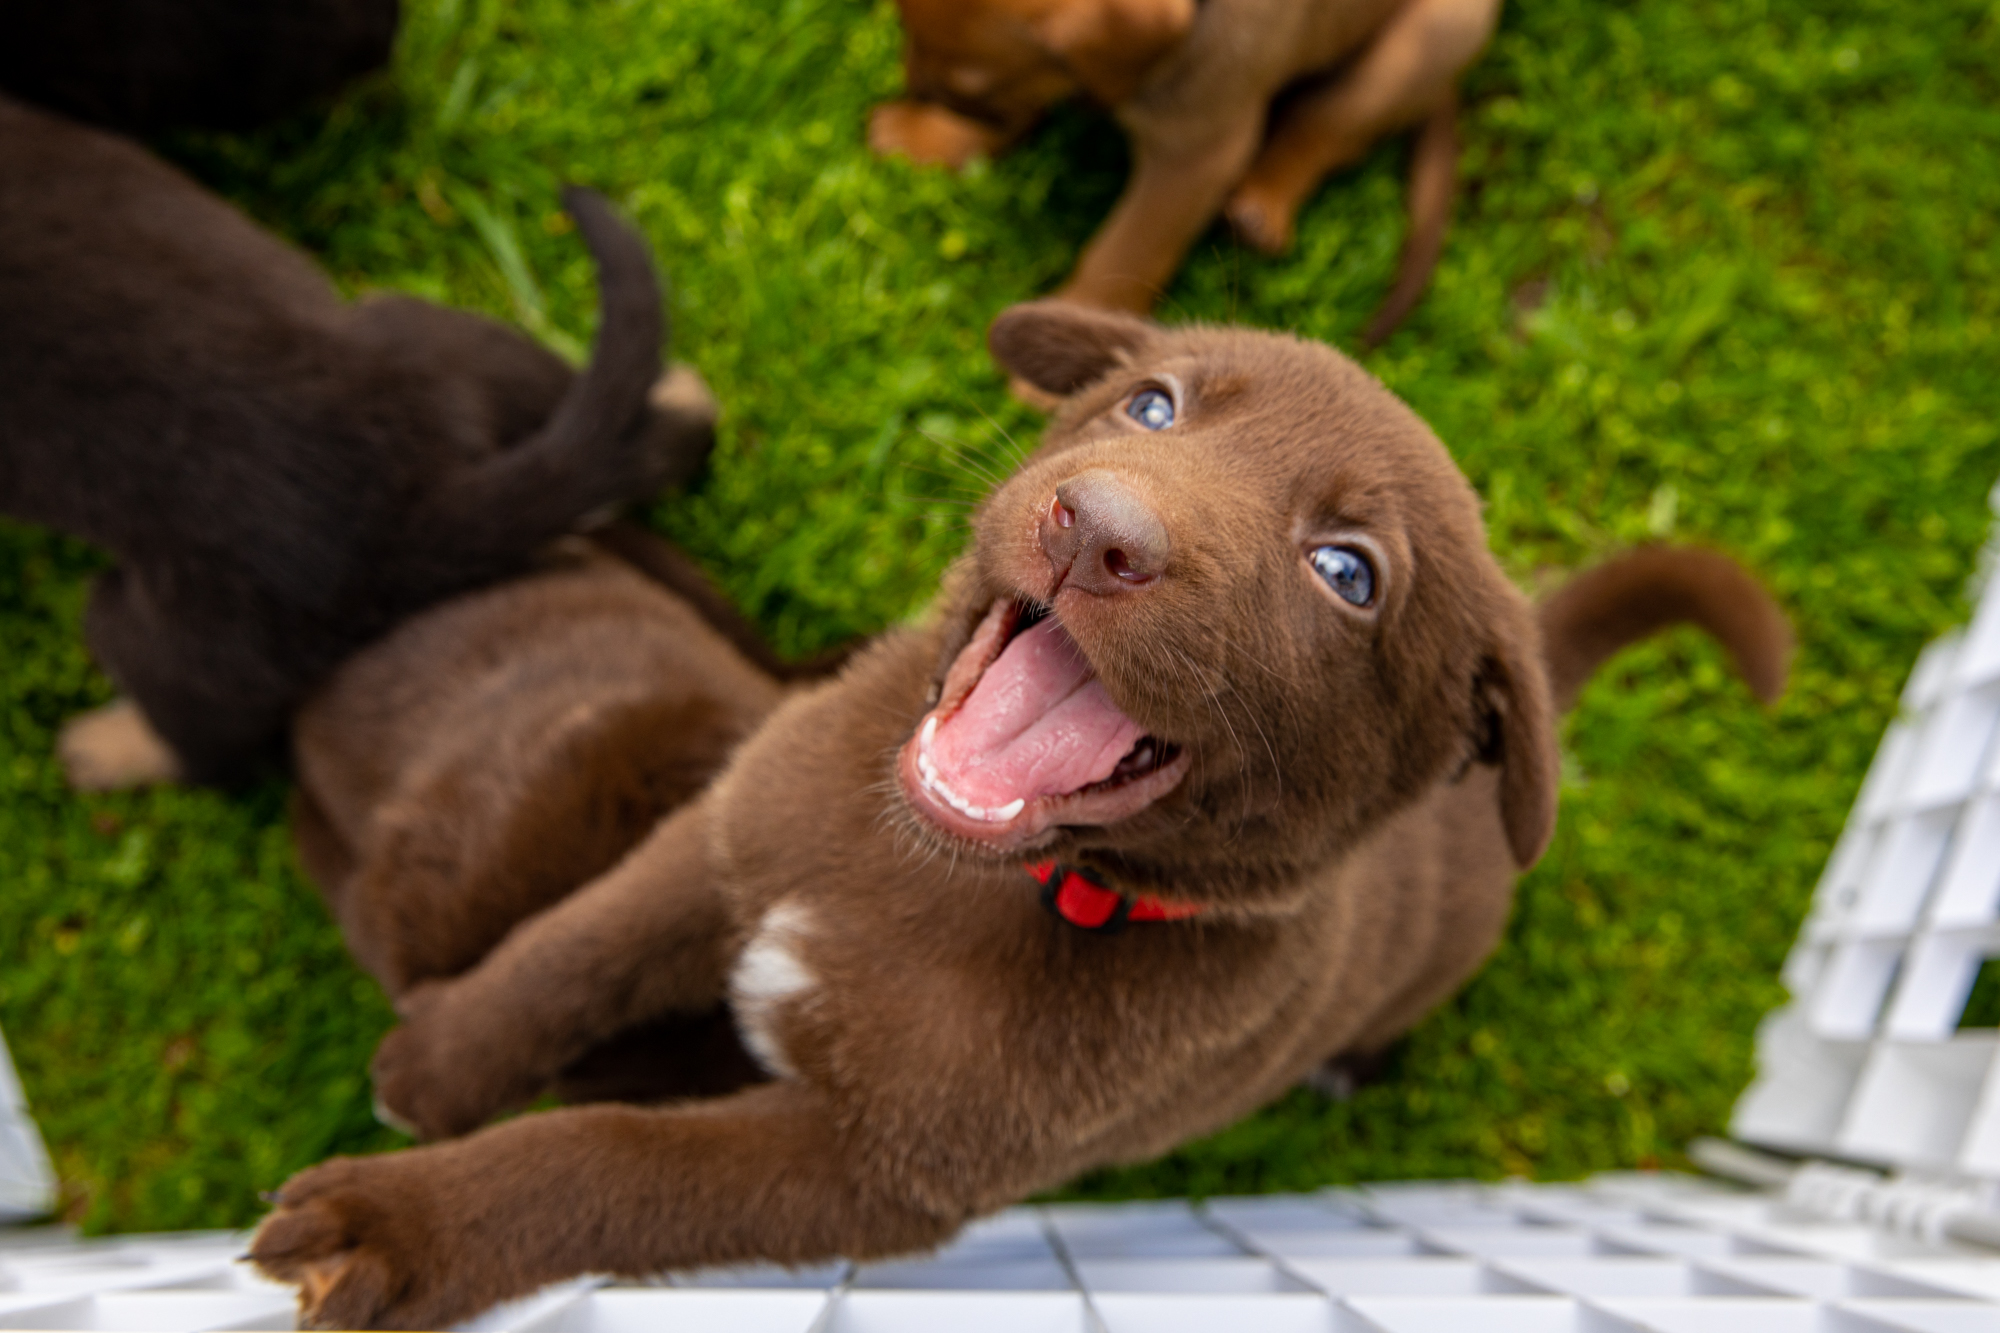 Mark Rogers Photographs the happiest chocolate puppy anyone has ever seen for Healthy Paws Pet Insurance